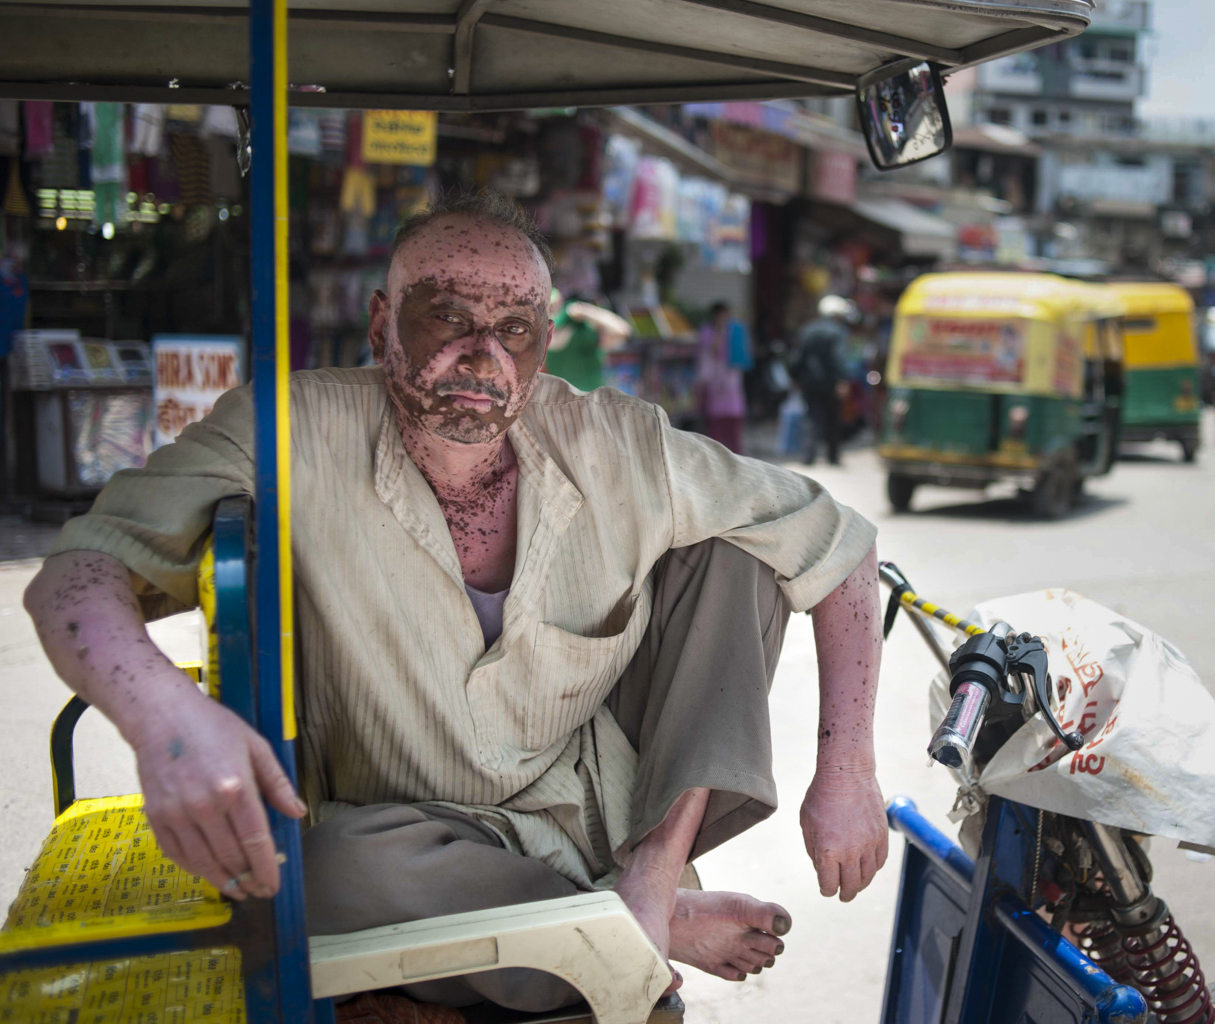 A rickshaw driver poses for a portrait between taking customers in the Main Bazaar of Paharganj in New Delhi on July 13, 2015.